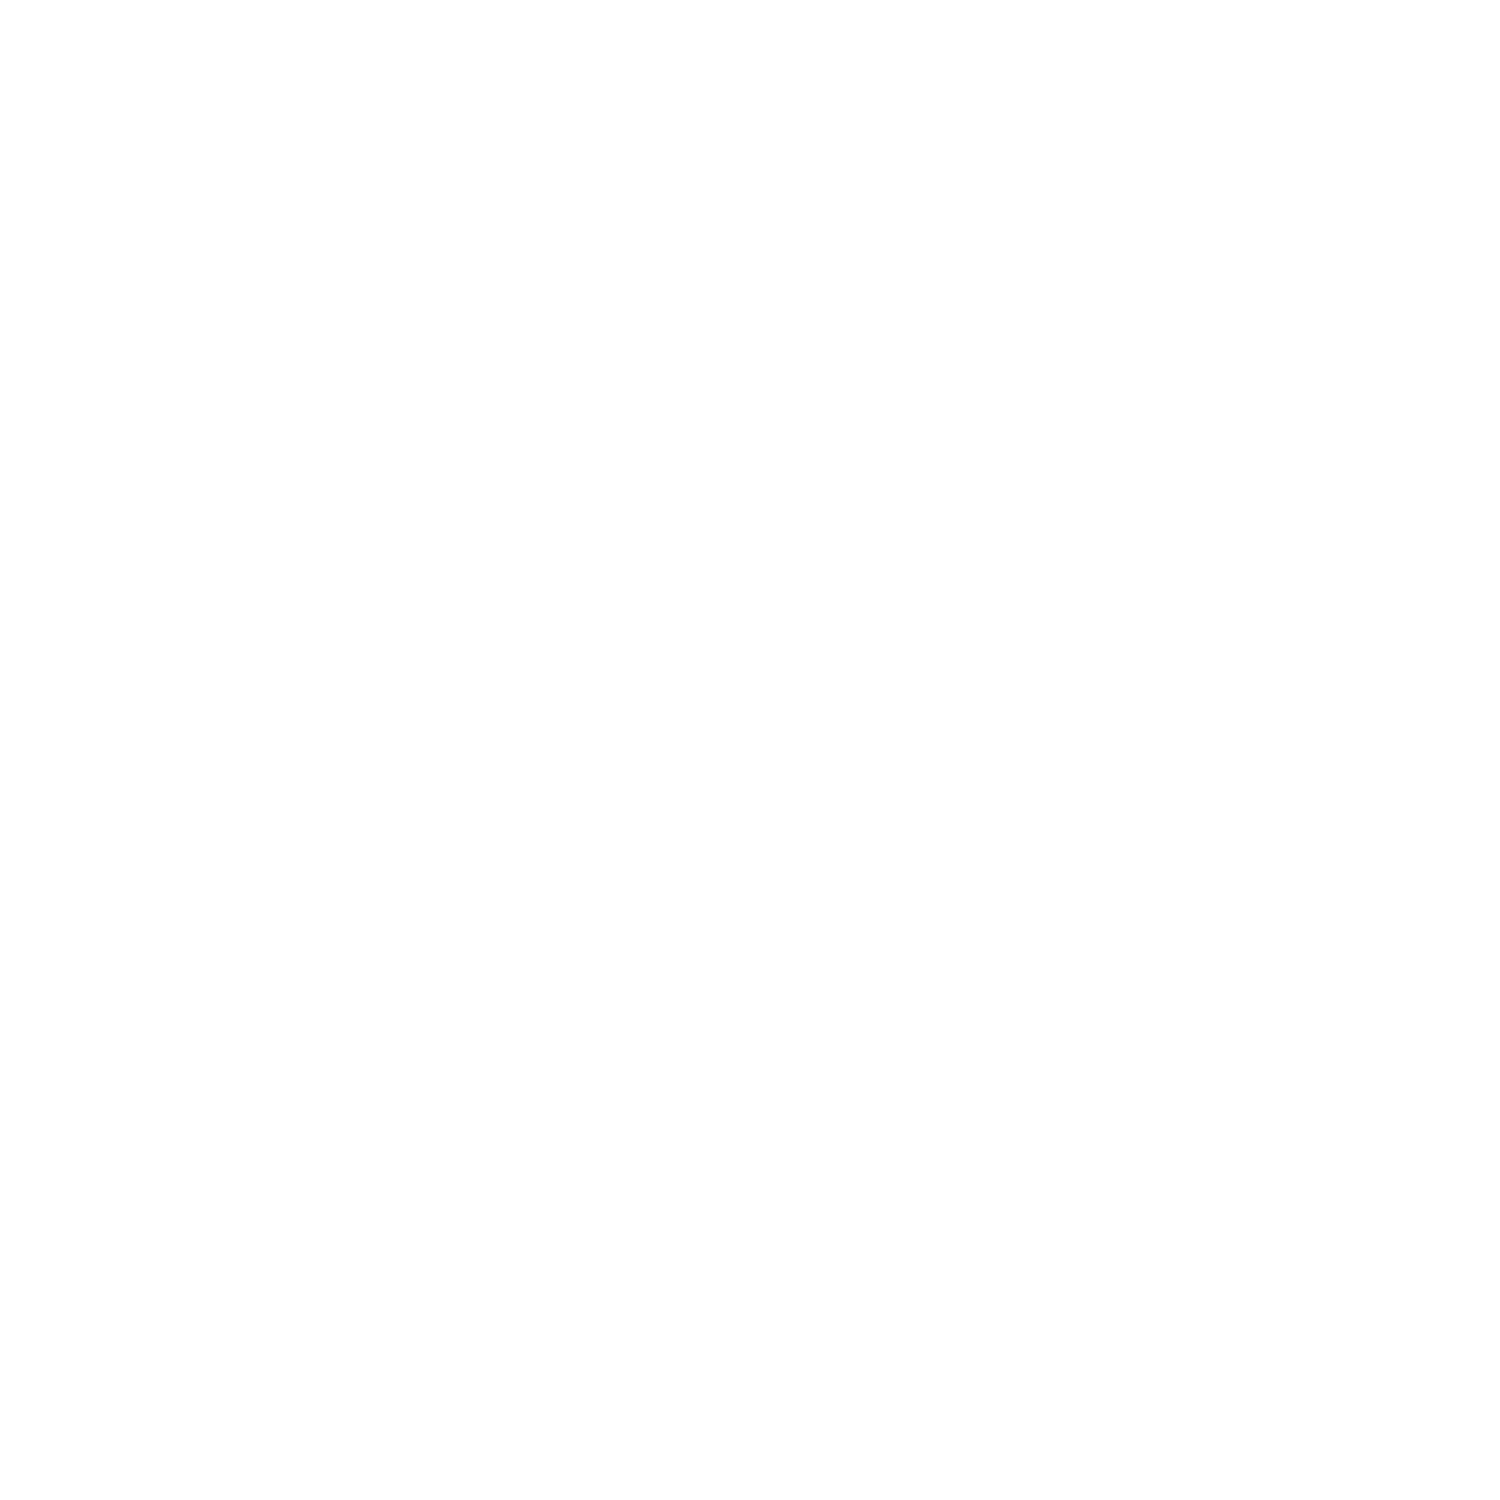 TRIJAWA Sports Consulting